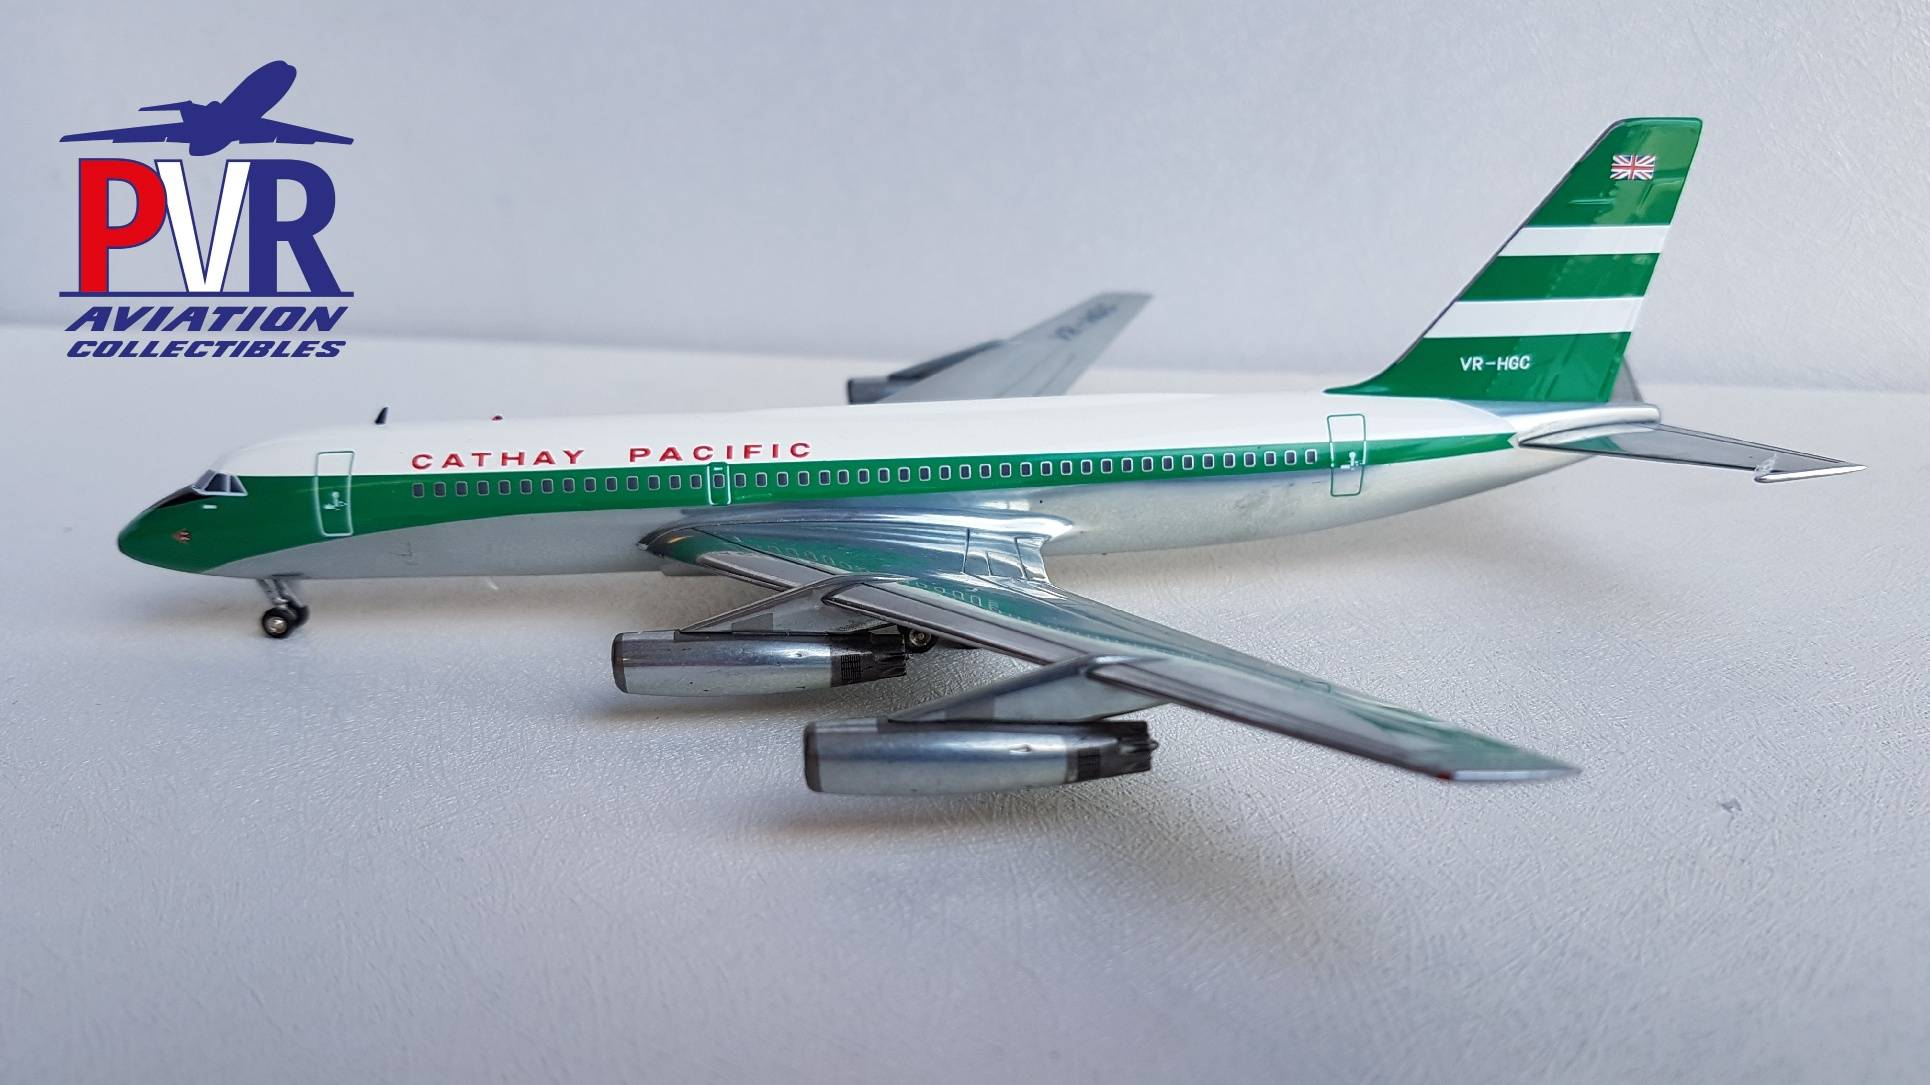 JFOX CATHAY PACIFIC CONVAIR 880 JFOX881 €69